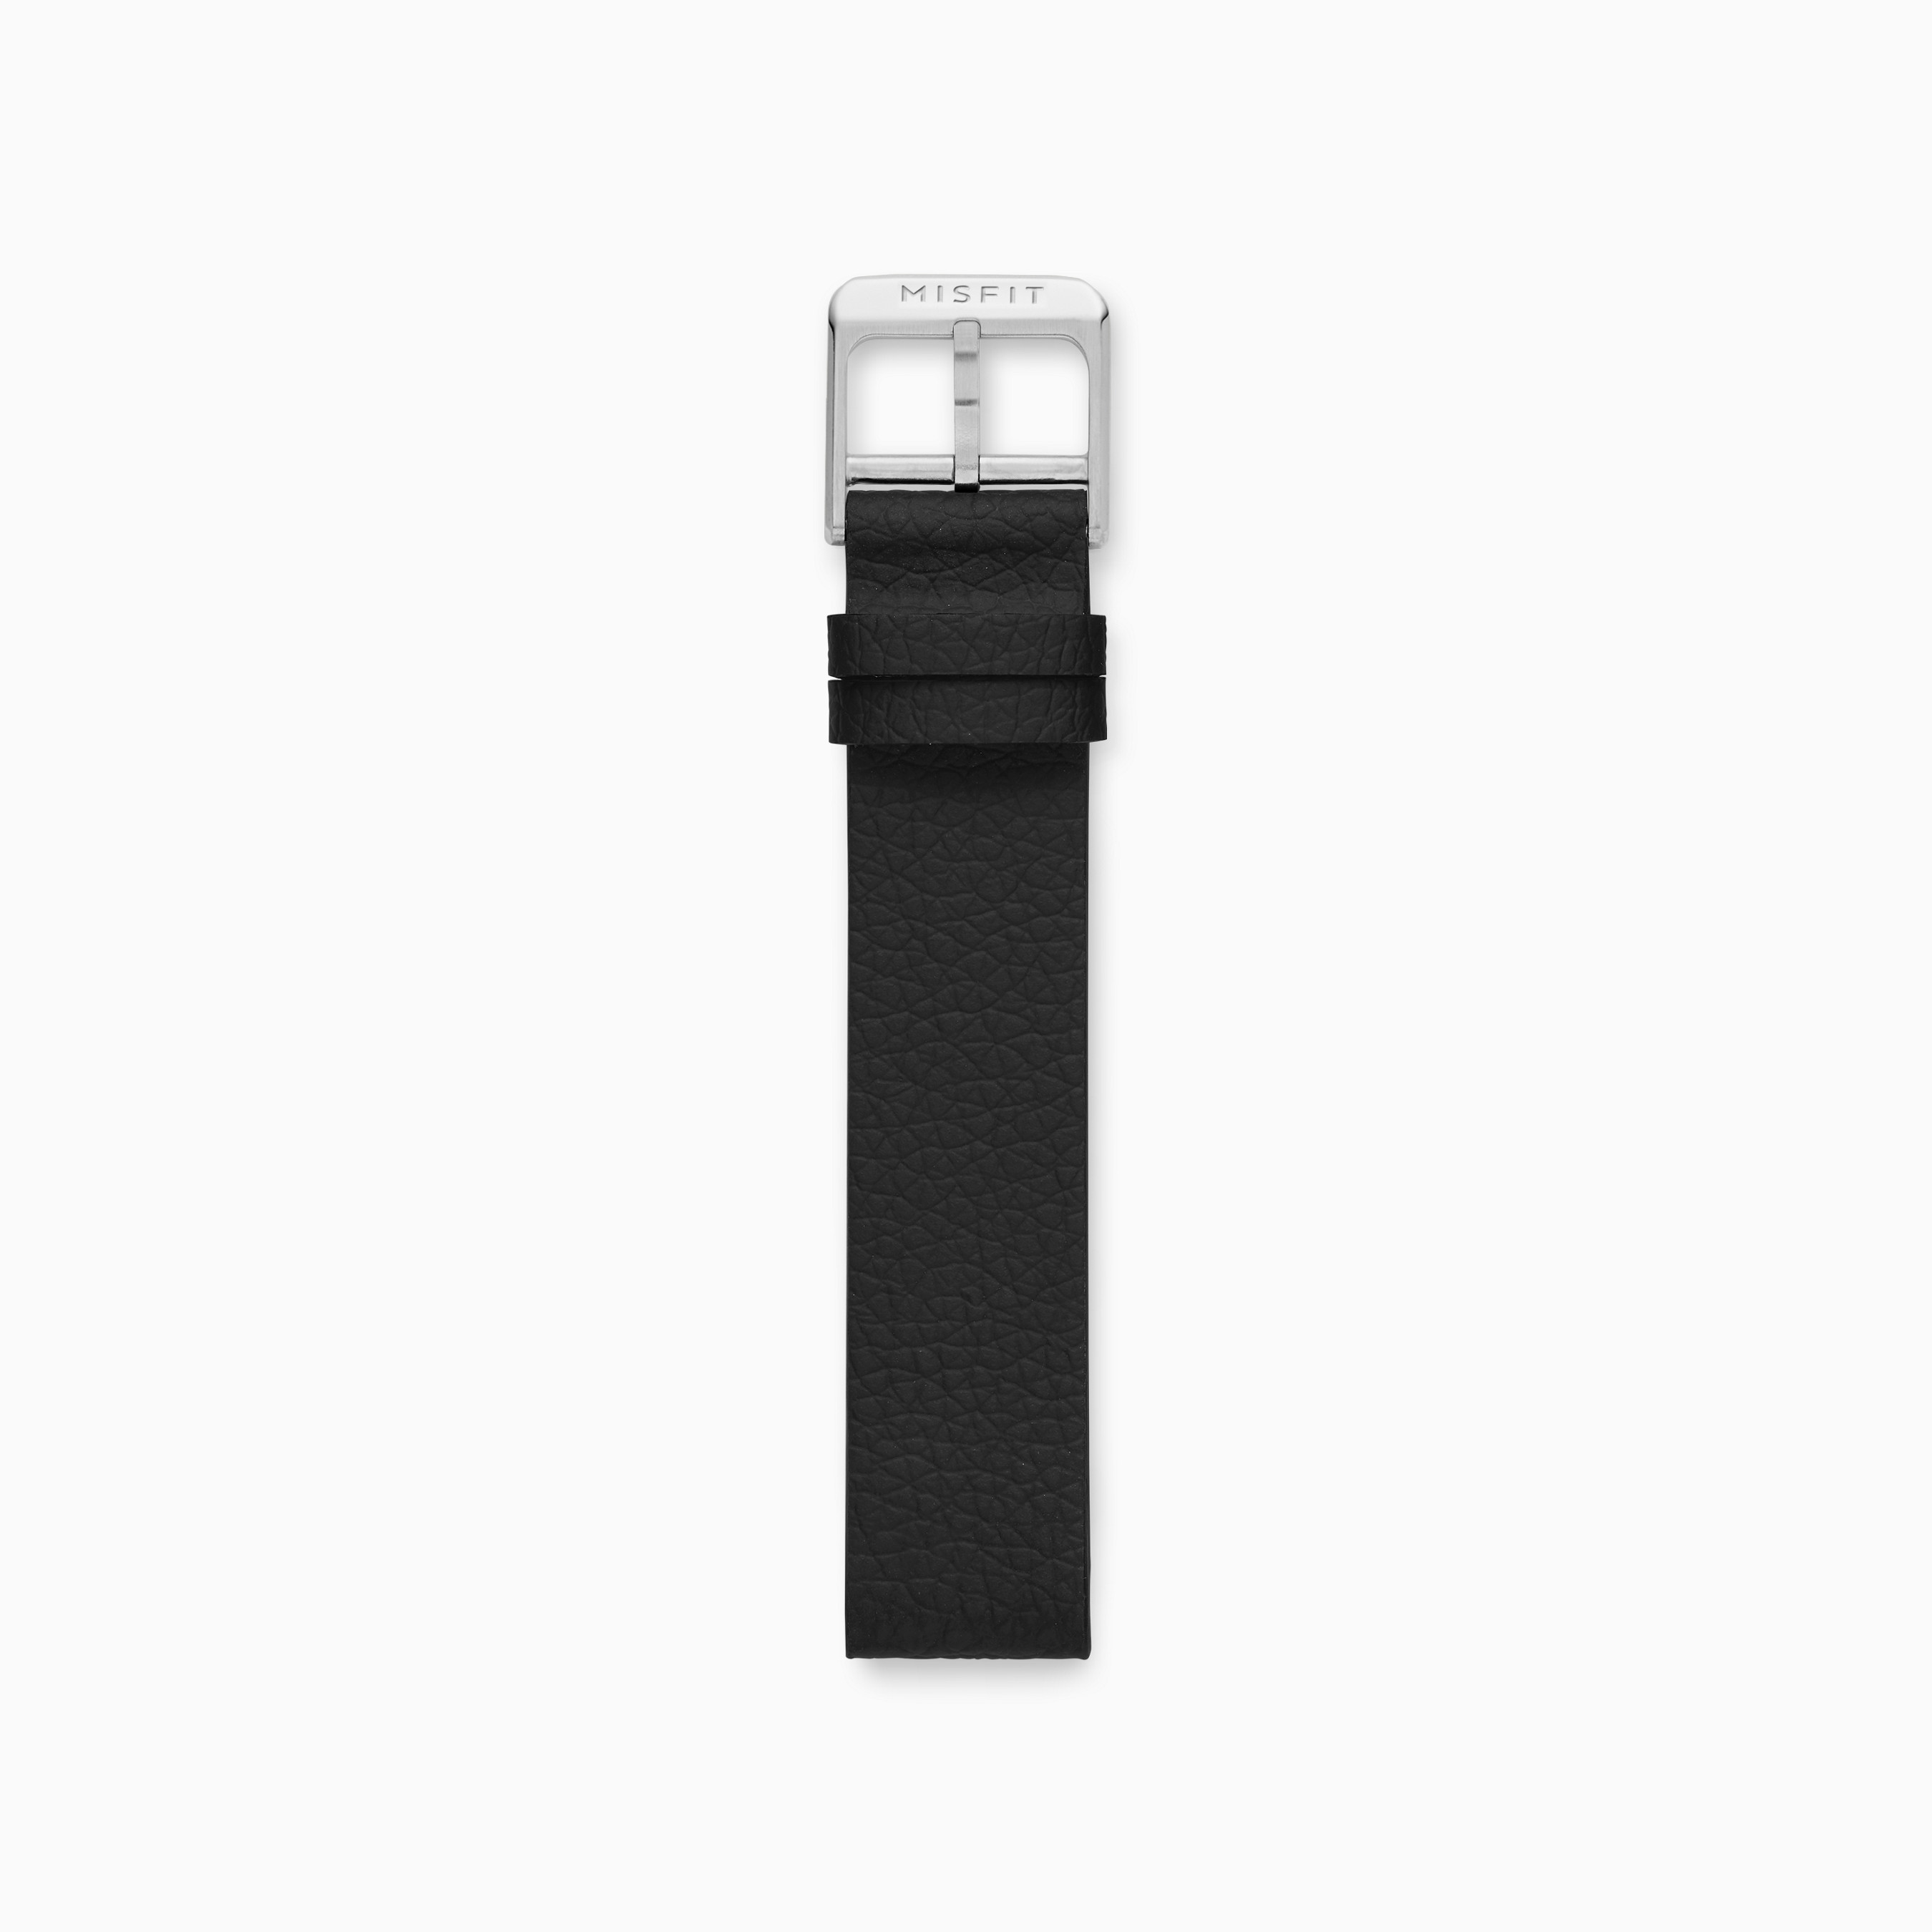 16mm Misfit Smartwatch Textured Sport Strap